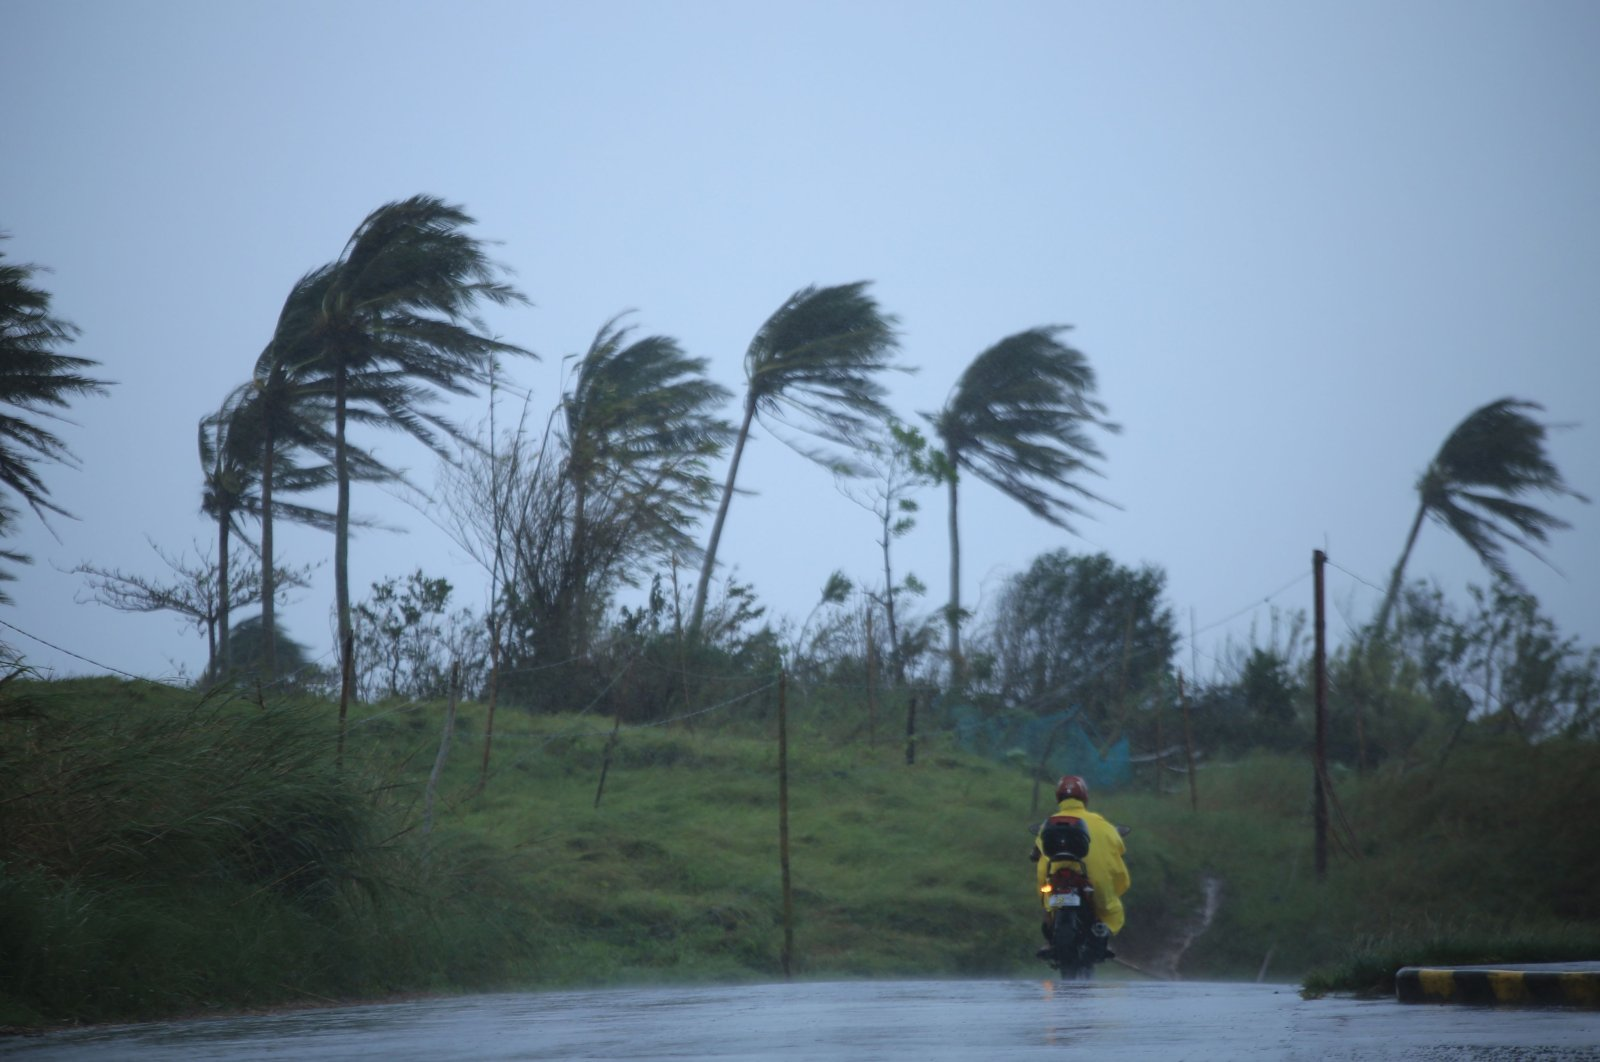 A motorist passes along a street amidst strong winds in Legazpi City, Albay province on November 11, 2020, ahead of the landfall of Tropical Storm Vamco -- expected to intensify into a typhoon -- in the region devastated by two typhoons in less than three weeks. (AFP Photo)